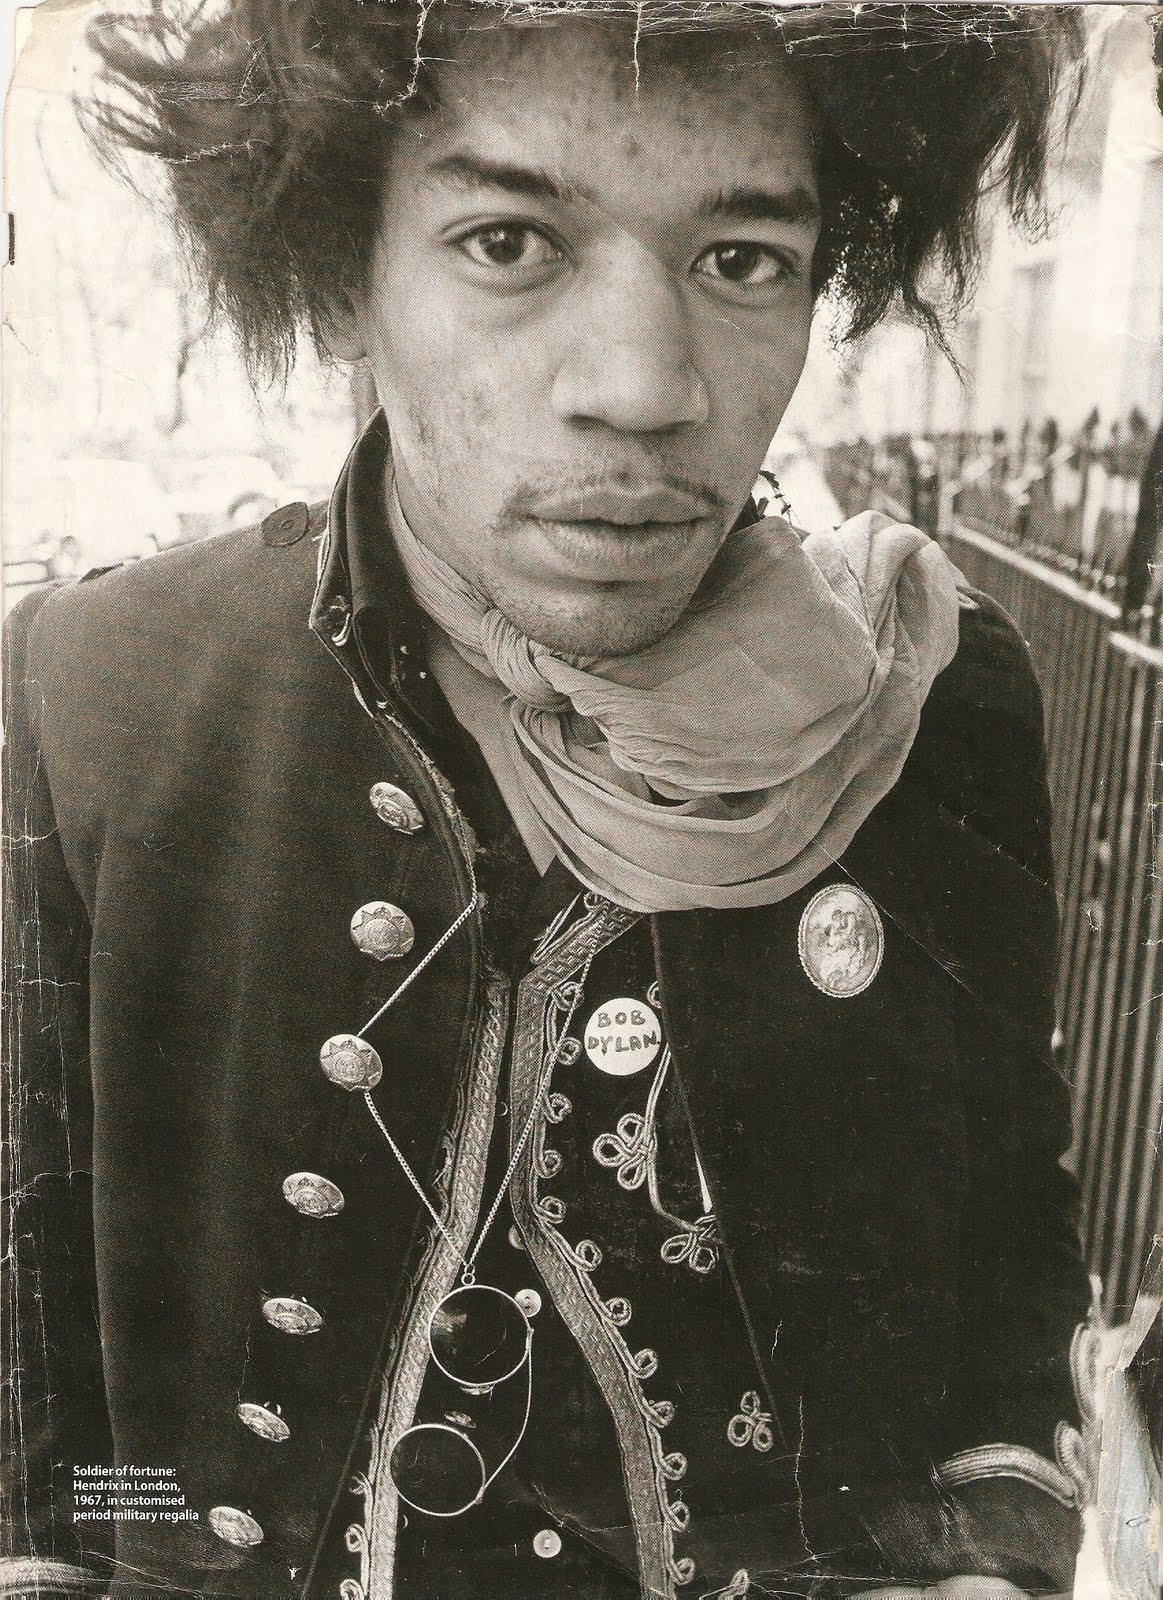 Jimi Hendrix Royal Army Veterinary Corps Jacket